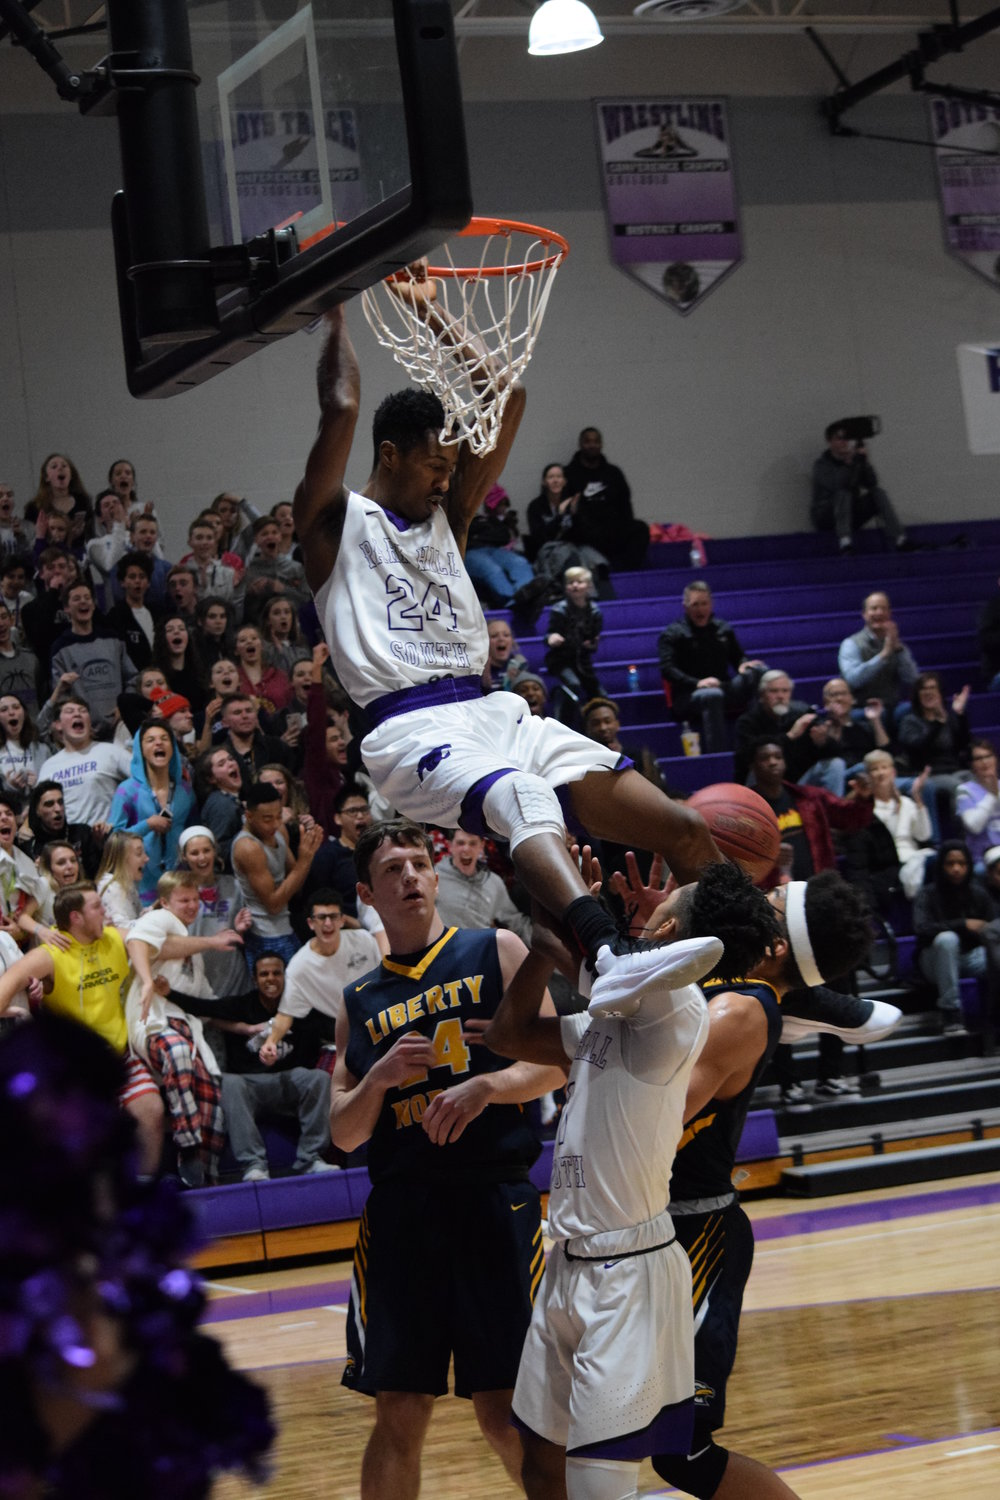 BRYCE MERENESS/Citizen photo Park Hill South senior Saadique Perkins  looks for a safe landing spot after a dunk in the Panther 60-56 loss to Liberty North  in Park Hil South's Suburban Conference opening game on Friday, Jan. 12 at Park Hill South  High School.